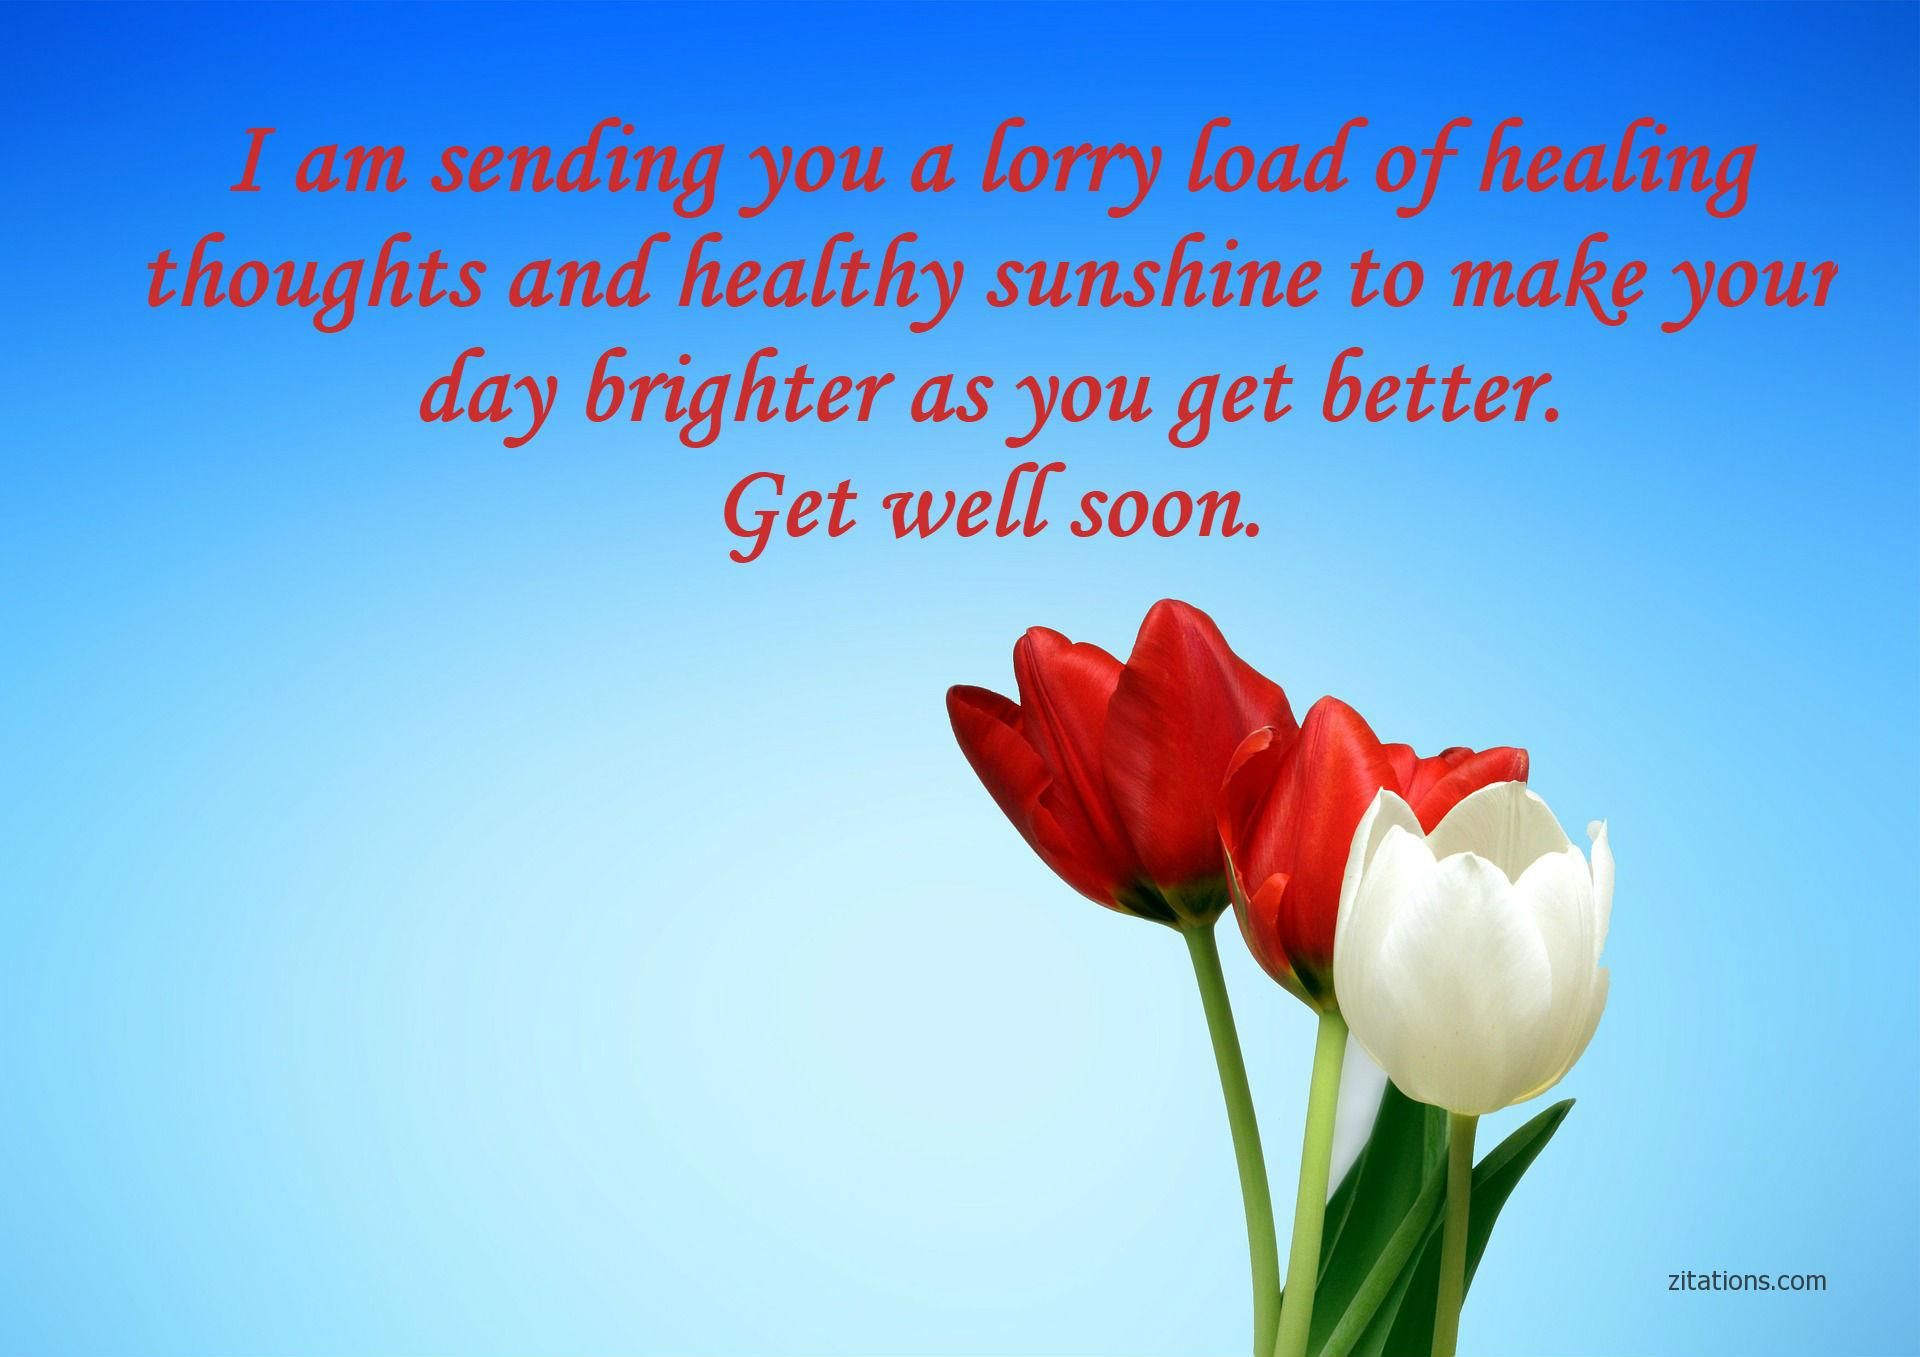 10 Speedy Recovery Wishes For Healing And Comfort Love Message